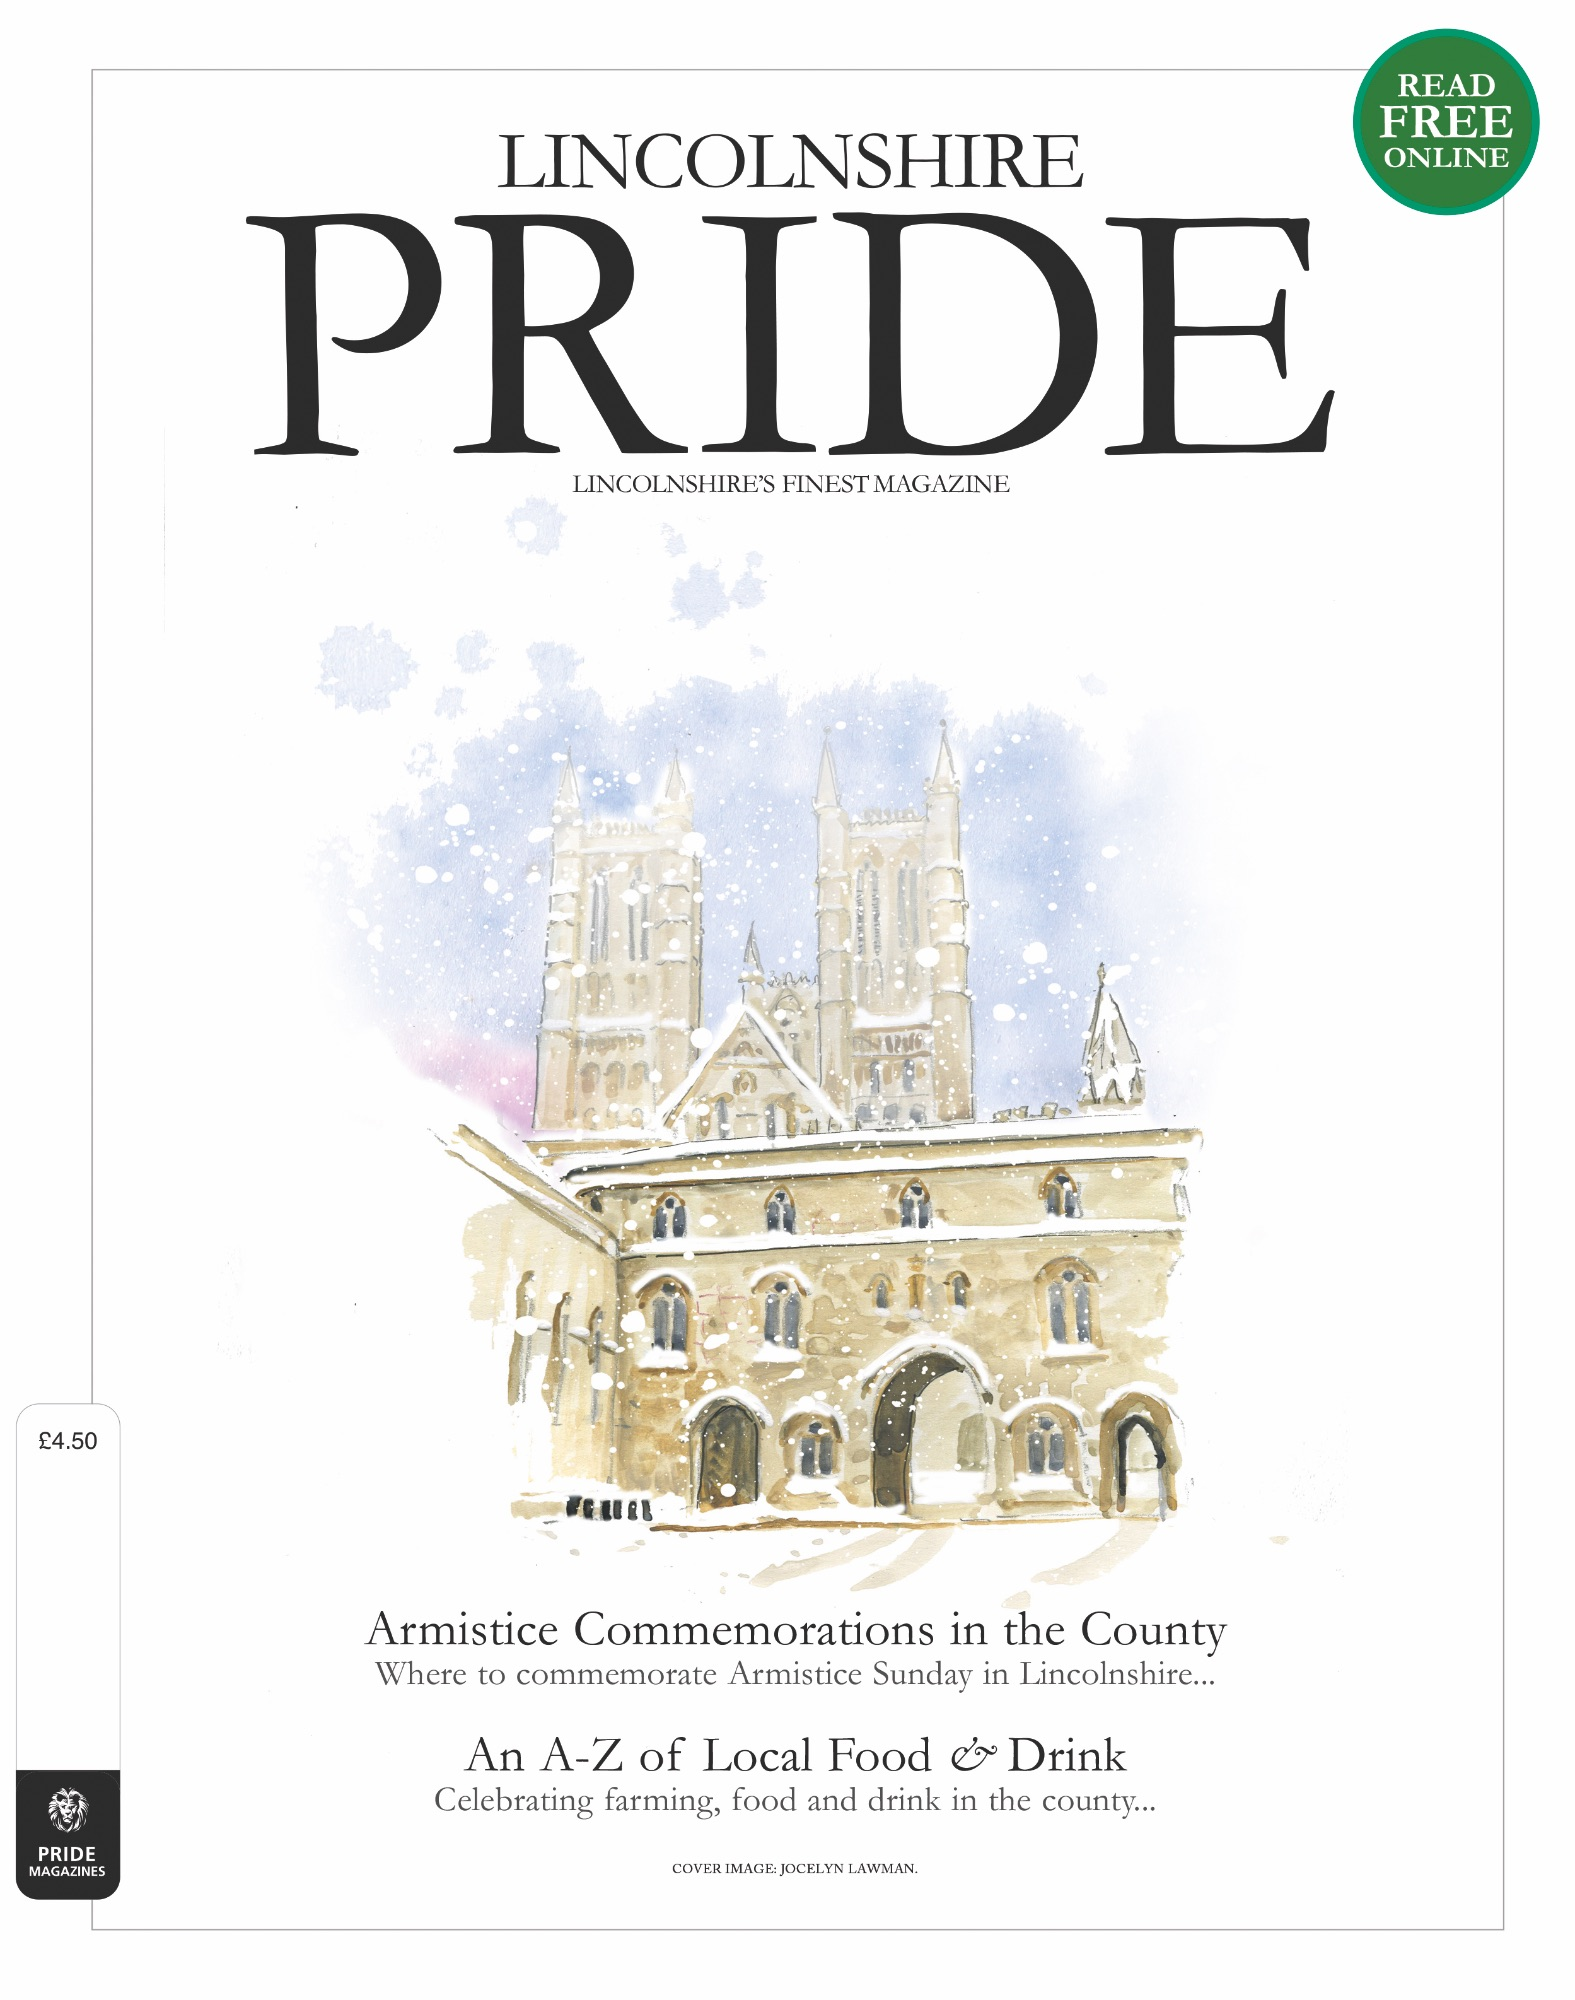 Front Page Template Lincolnshire.jpg